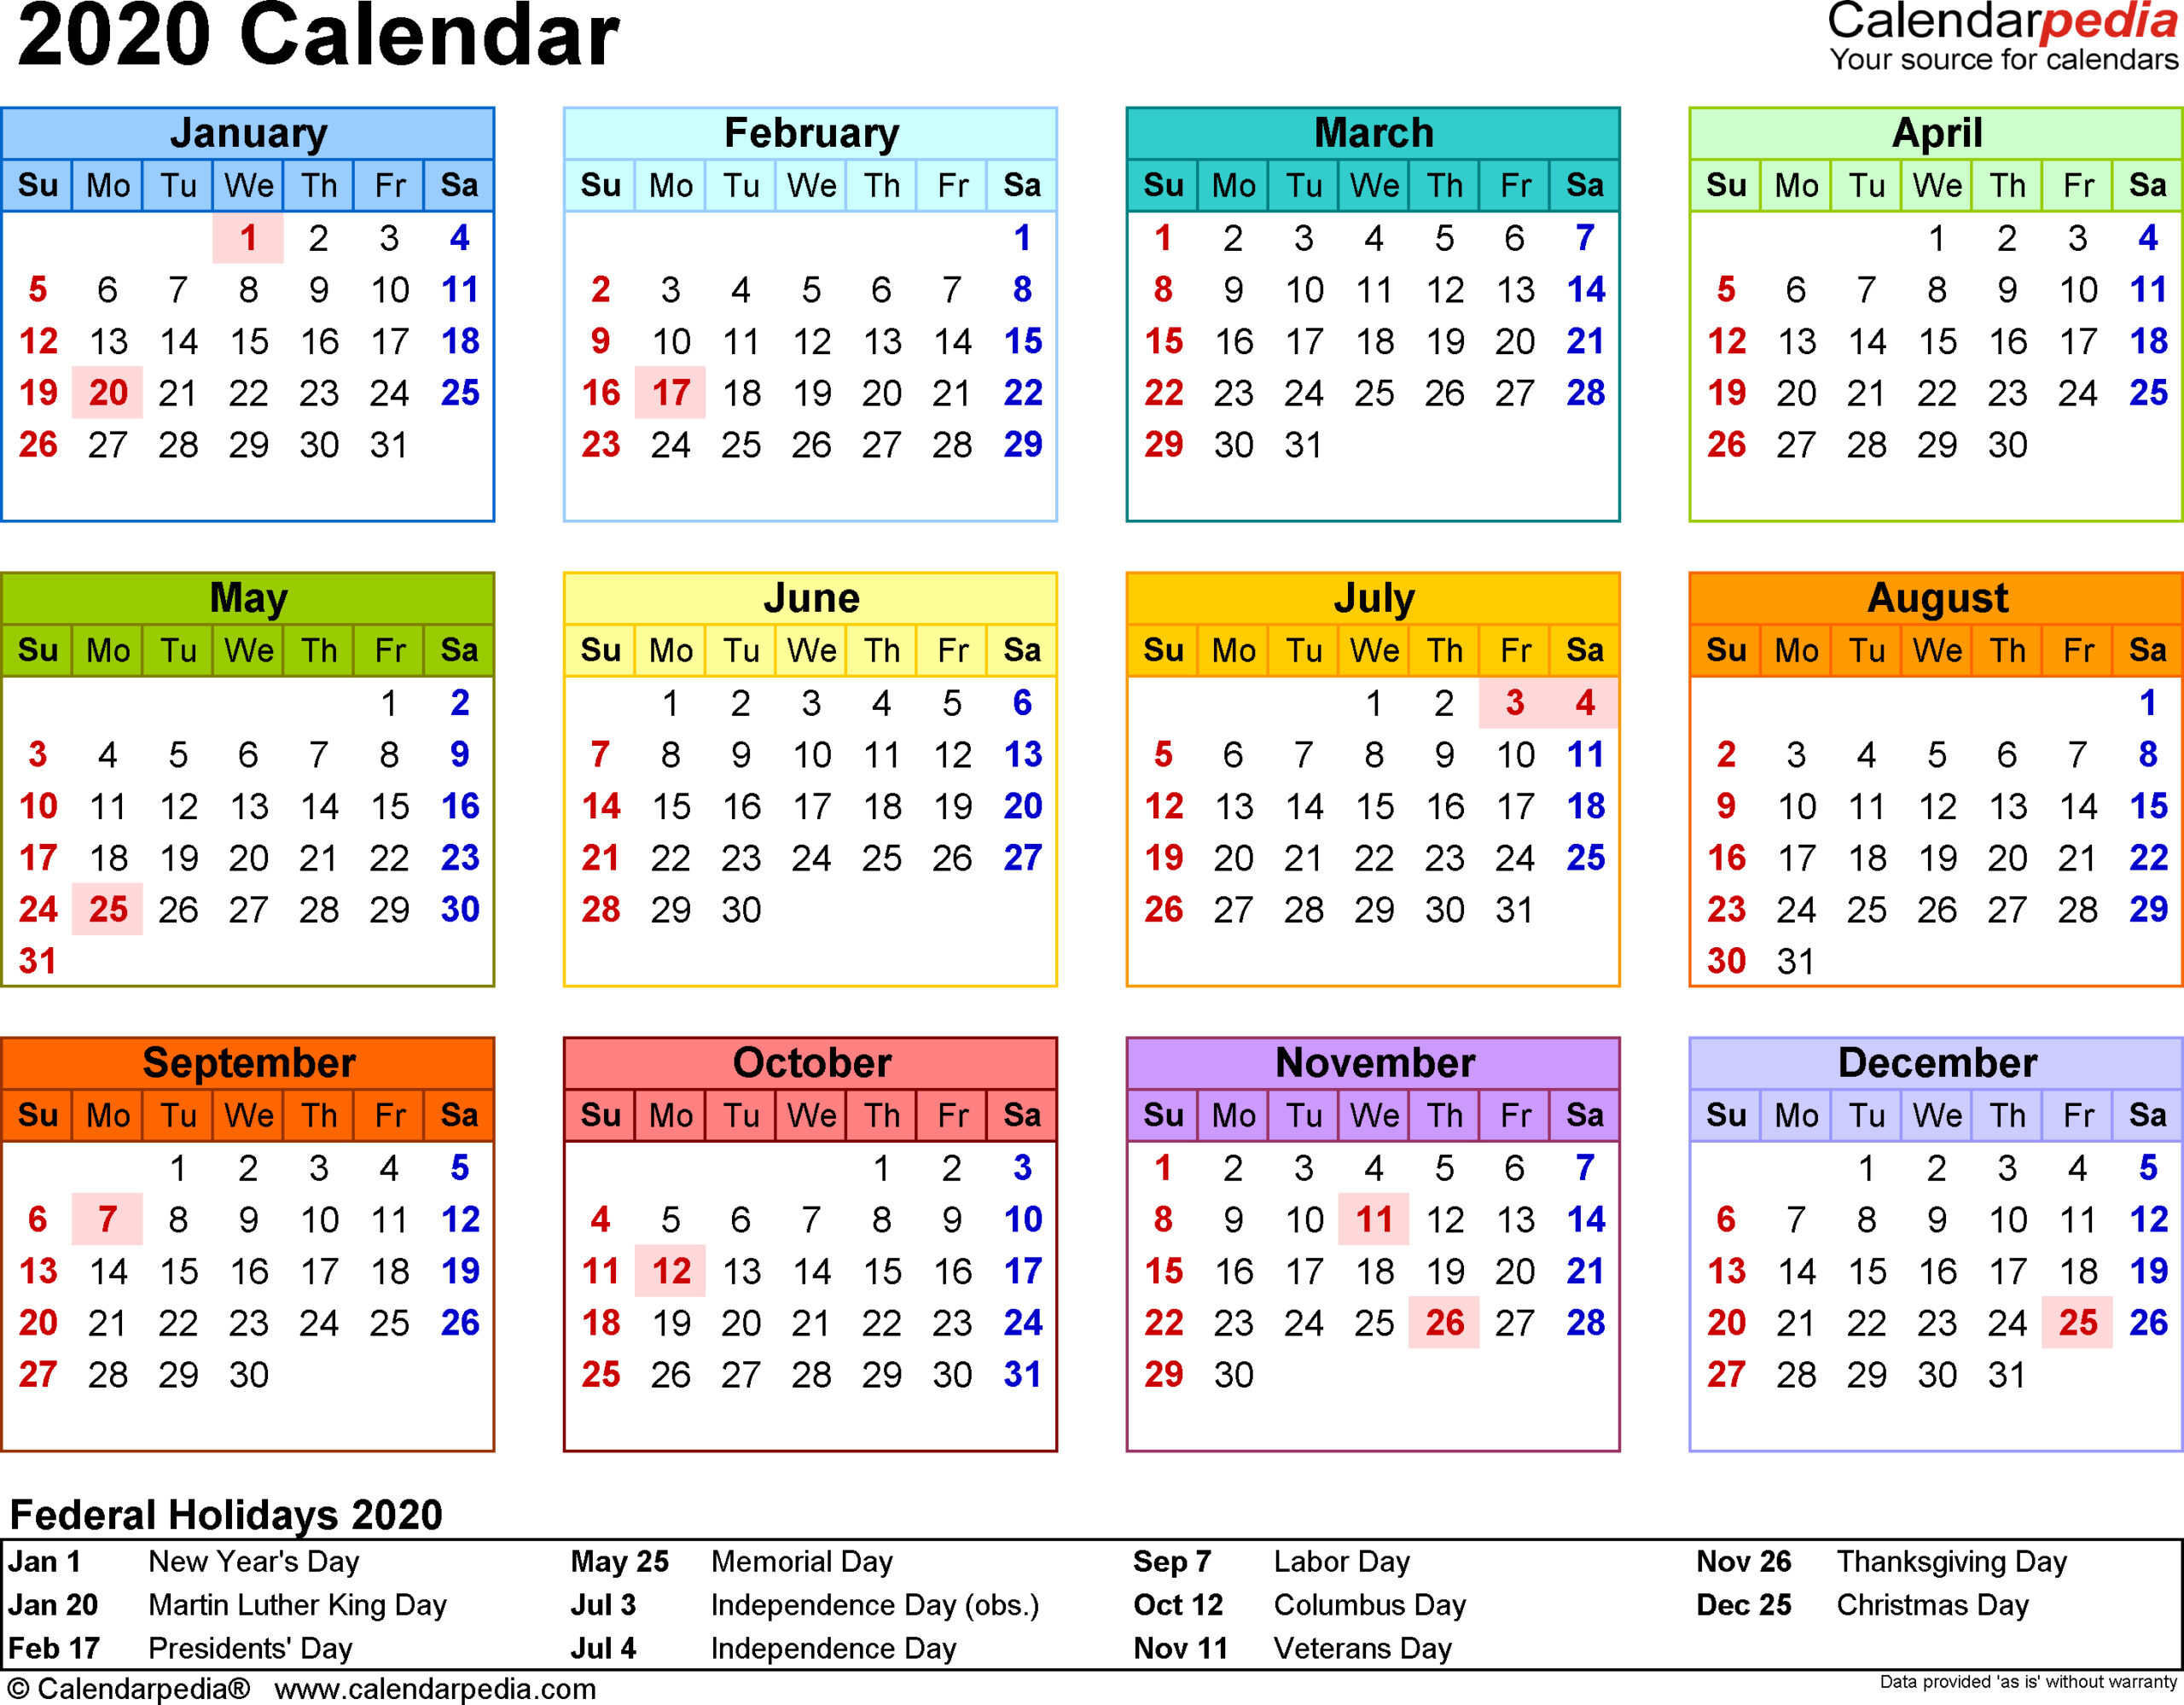 2020 Hong Kong Calendar Excel | Calendar For Planning